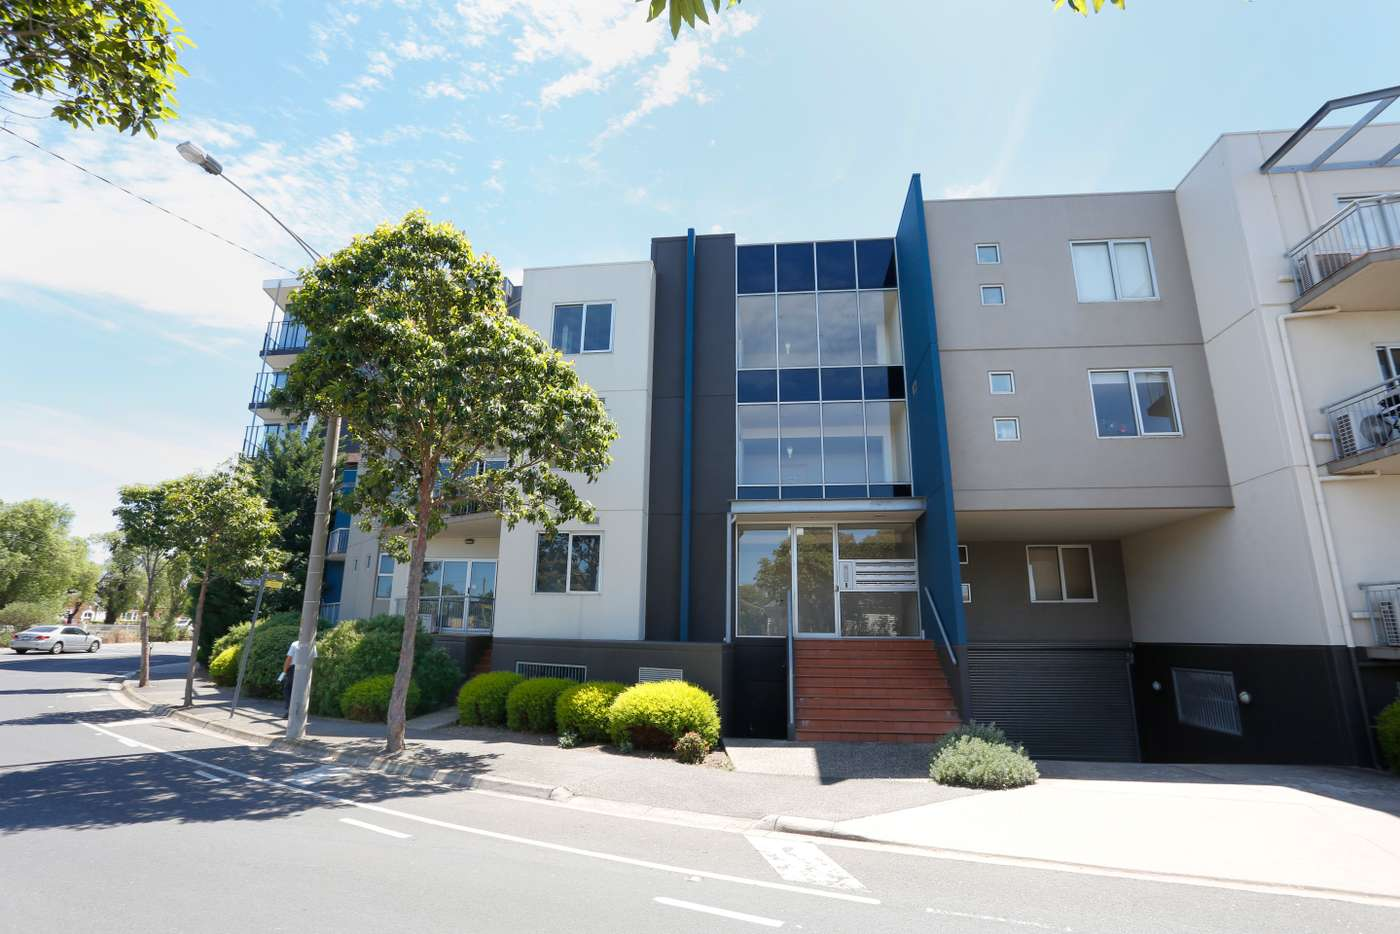 Main view of Homely apartment listing, 4/36 Gladstone Street, Moonee Ponds VIC 3039